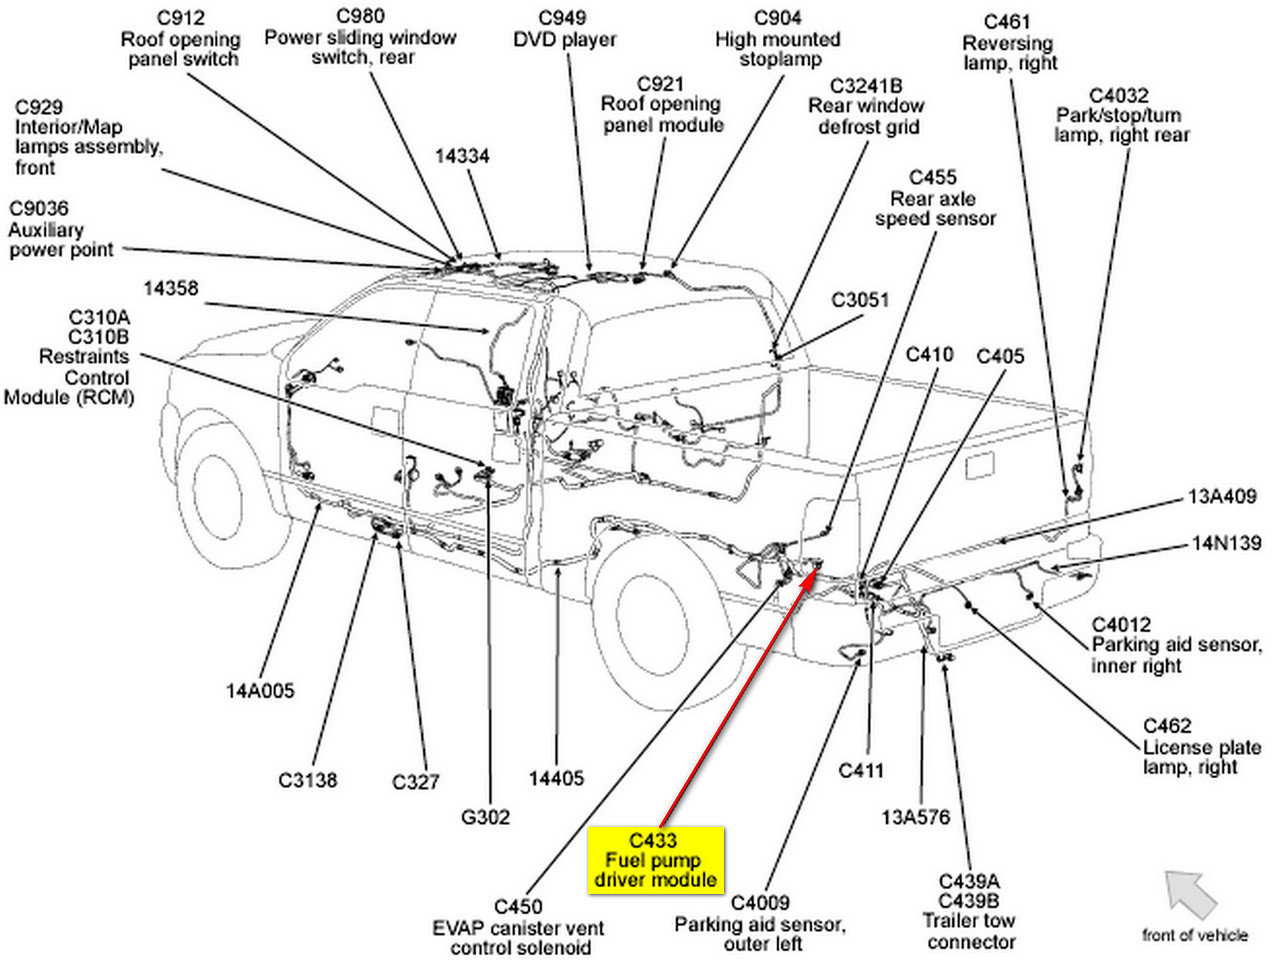 F250 6 9l Fuel System Diagram Great Installation Of Wiring 2001 F350 Powerstroke Pump 2000 Ford Todays Rh 18 3 10 1813weddingbarn Com 73